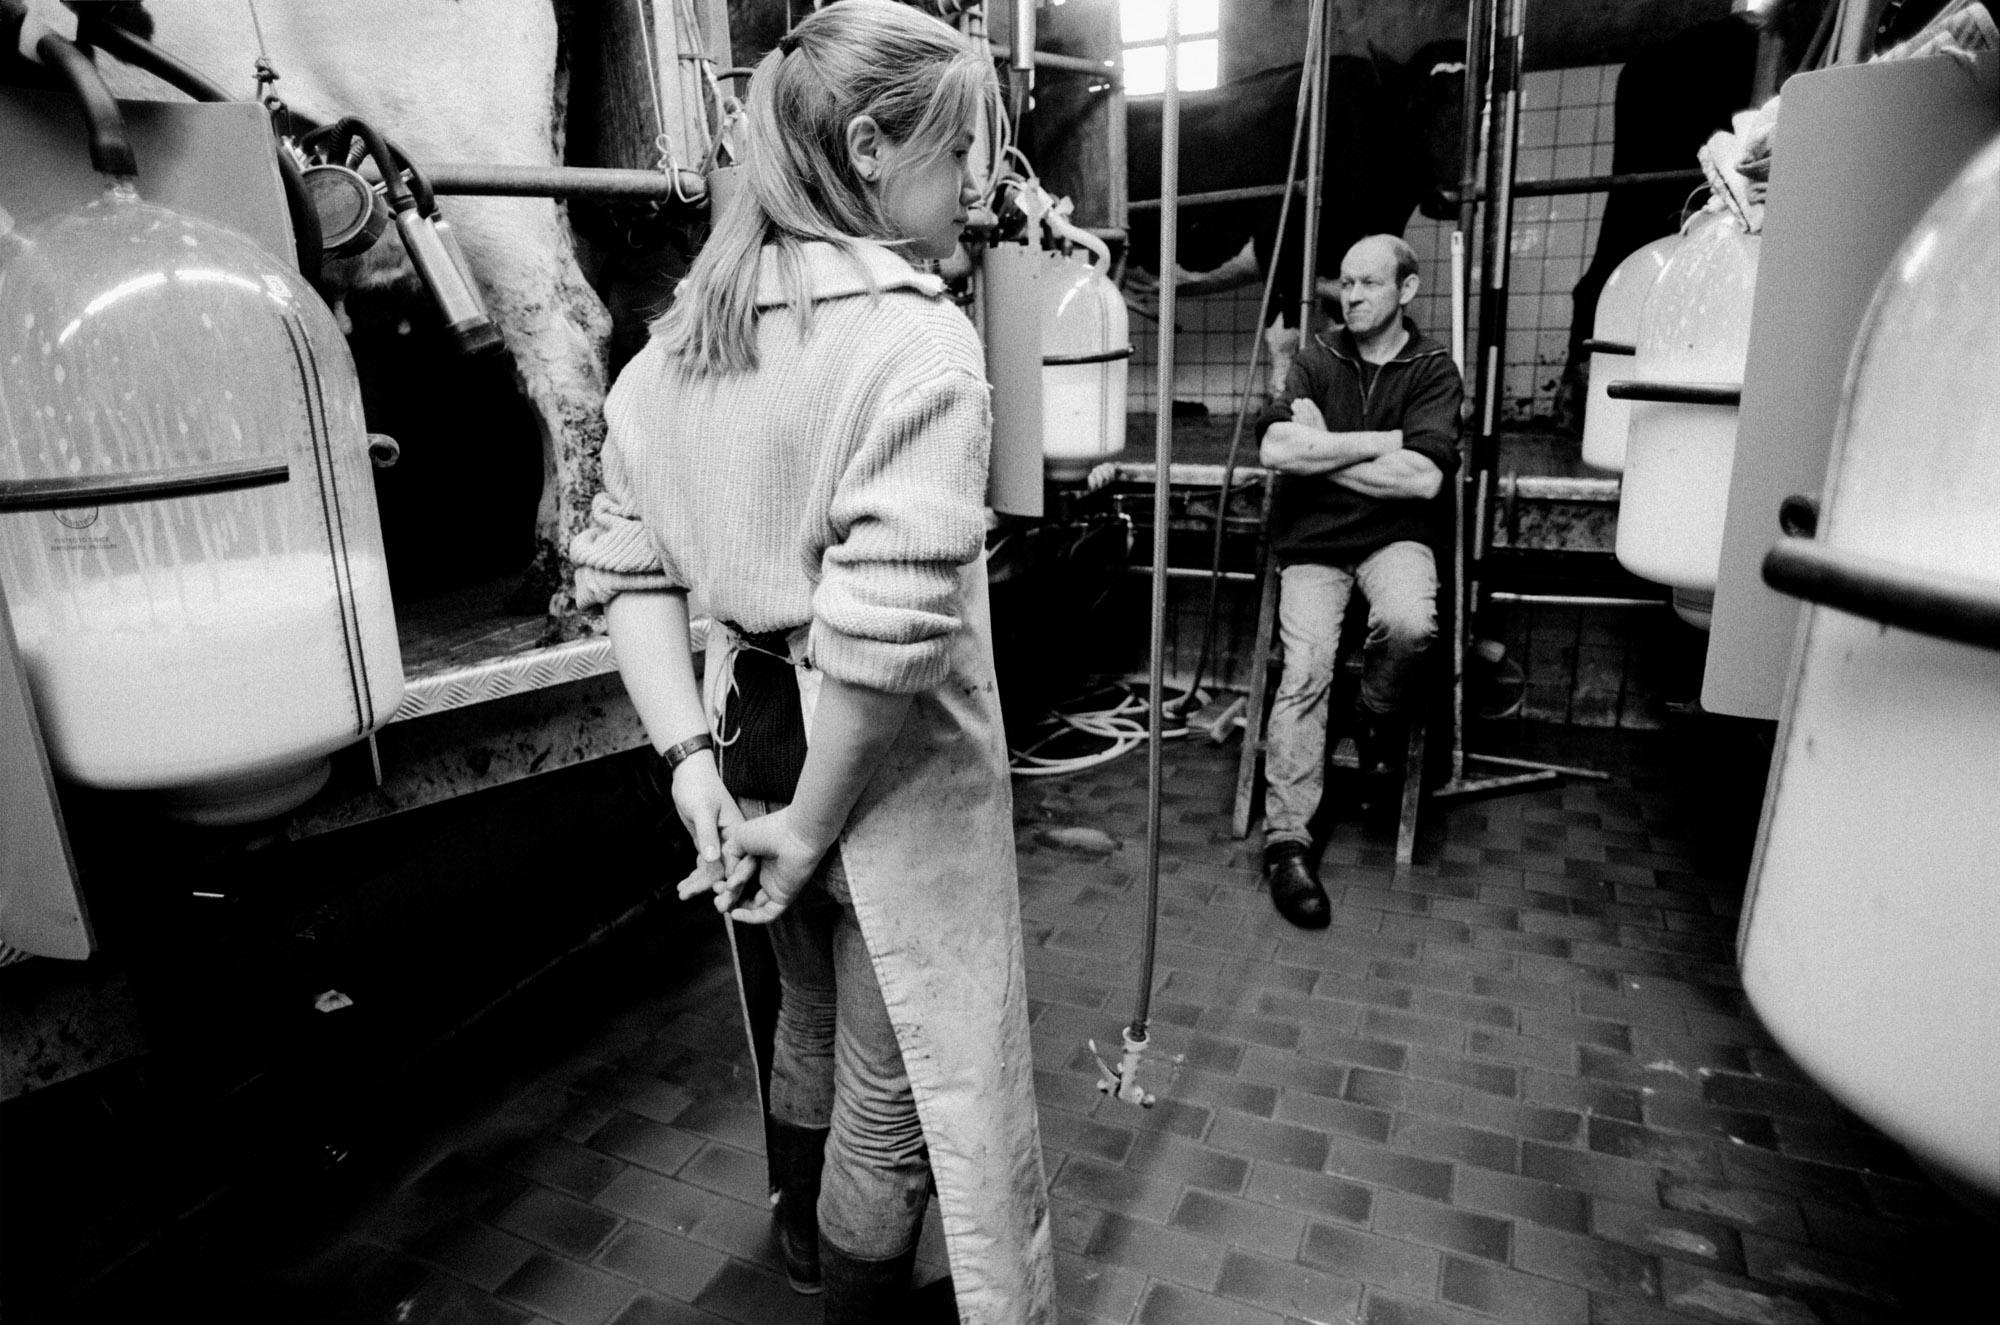 Mirjam wants to become a farmer and milk cows. She is a student at the agricultural school. During her weekly apprenticeship she is learning the milking process on the farm of Piet Verhoef. Nieuwerbrug, The Netherlands. February 1995.